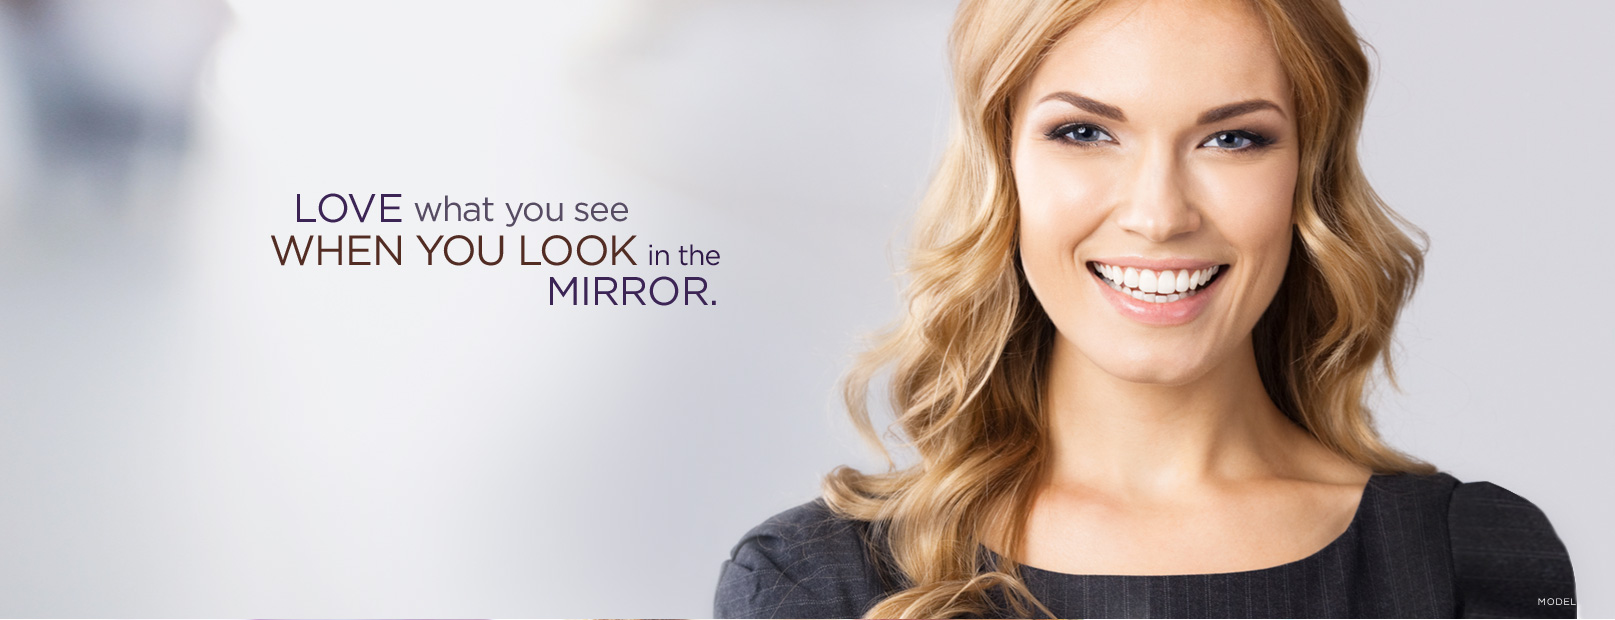 Toronto skin care products masthead: Love what you see when you look in the mirror.